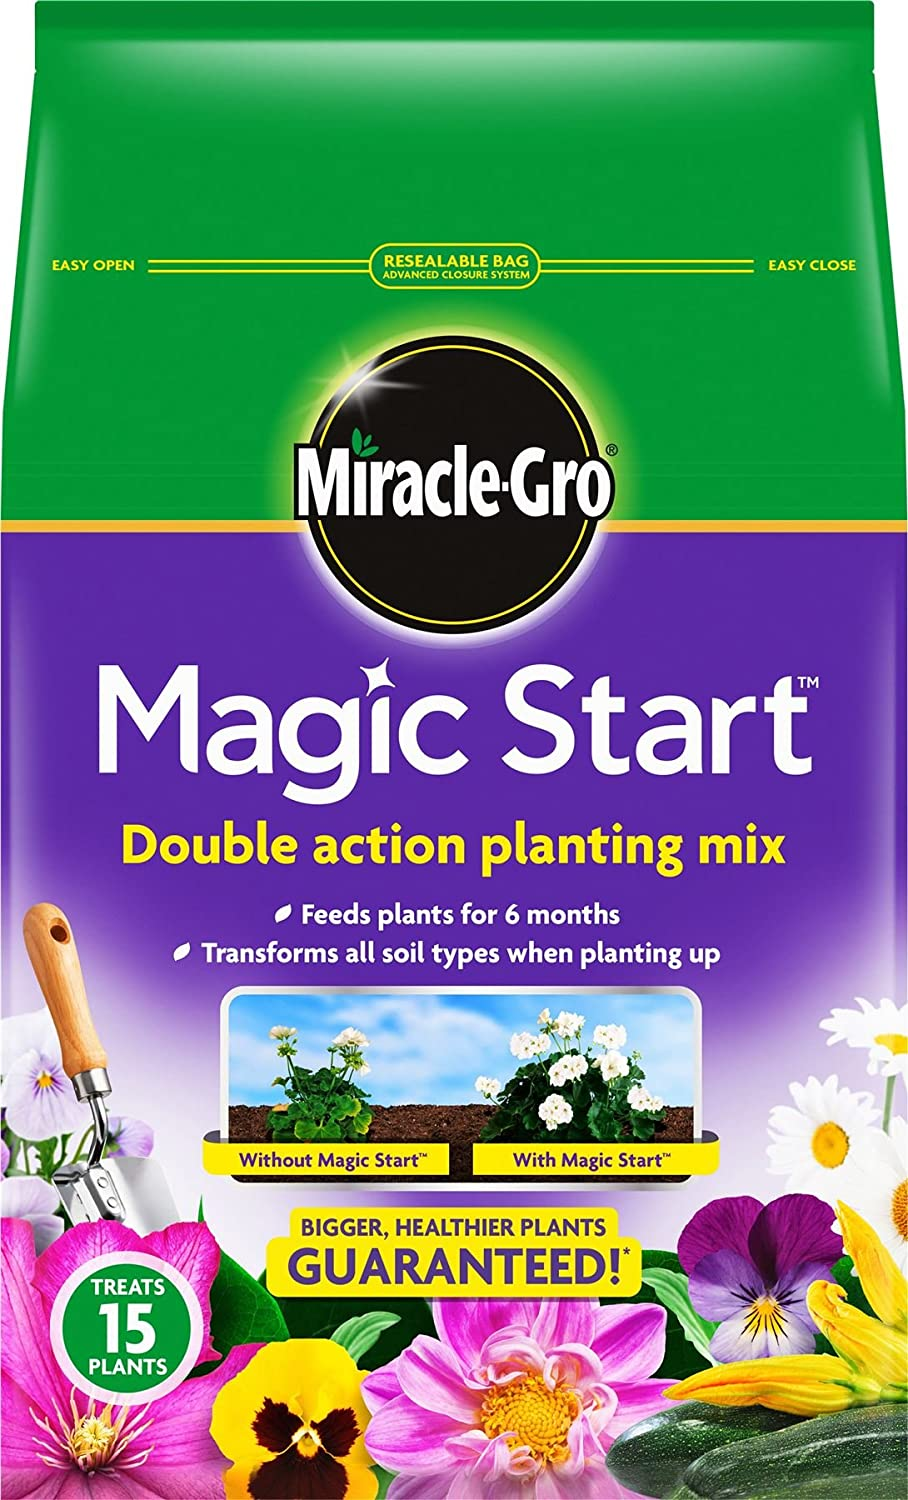 Miracle-Gro Magic Start 5L - 010002: Amazon.es: Hogar